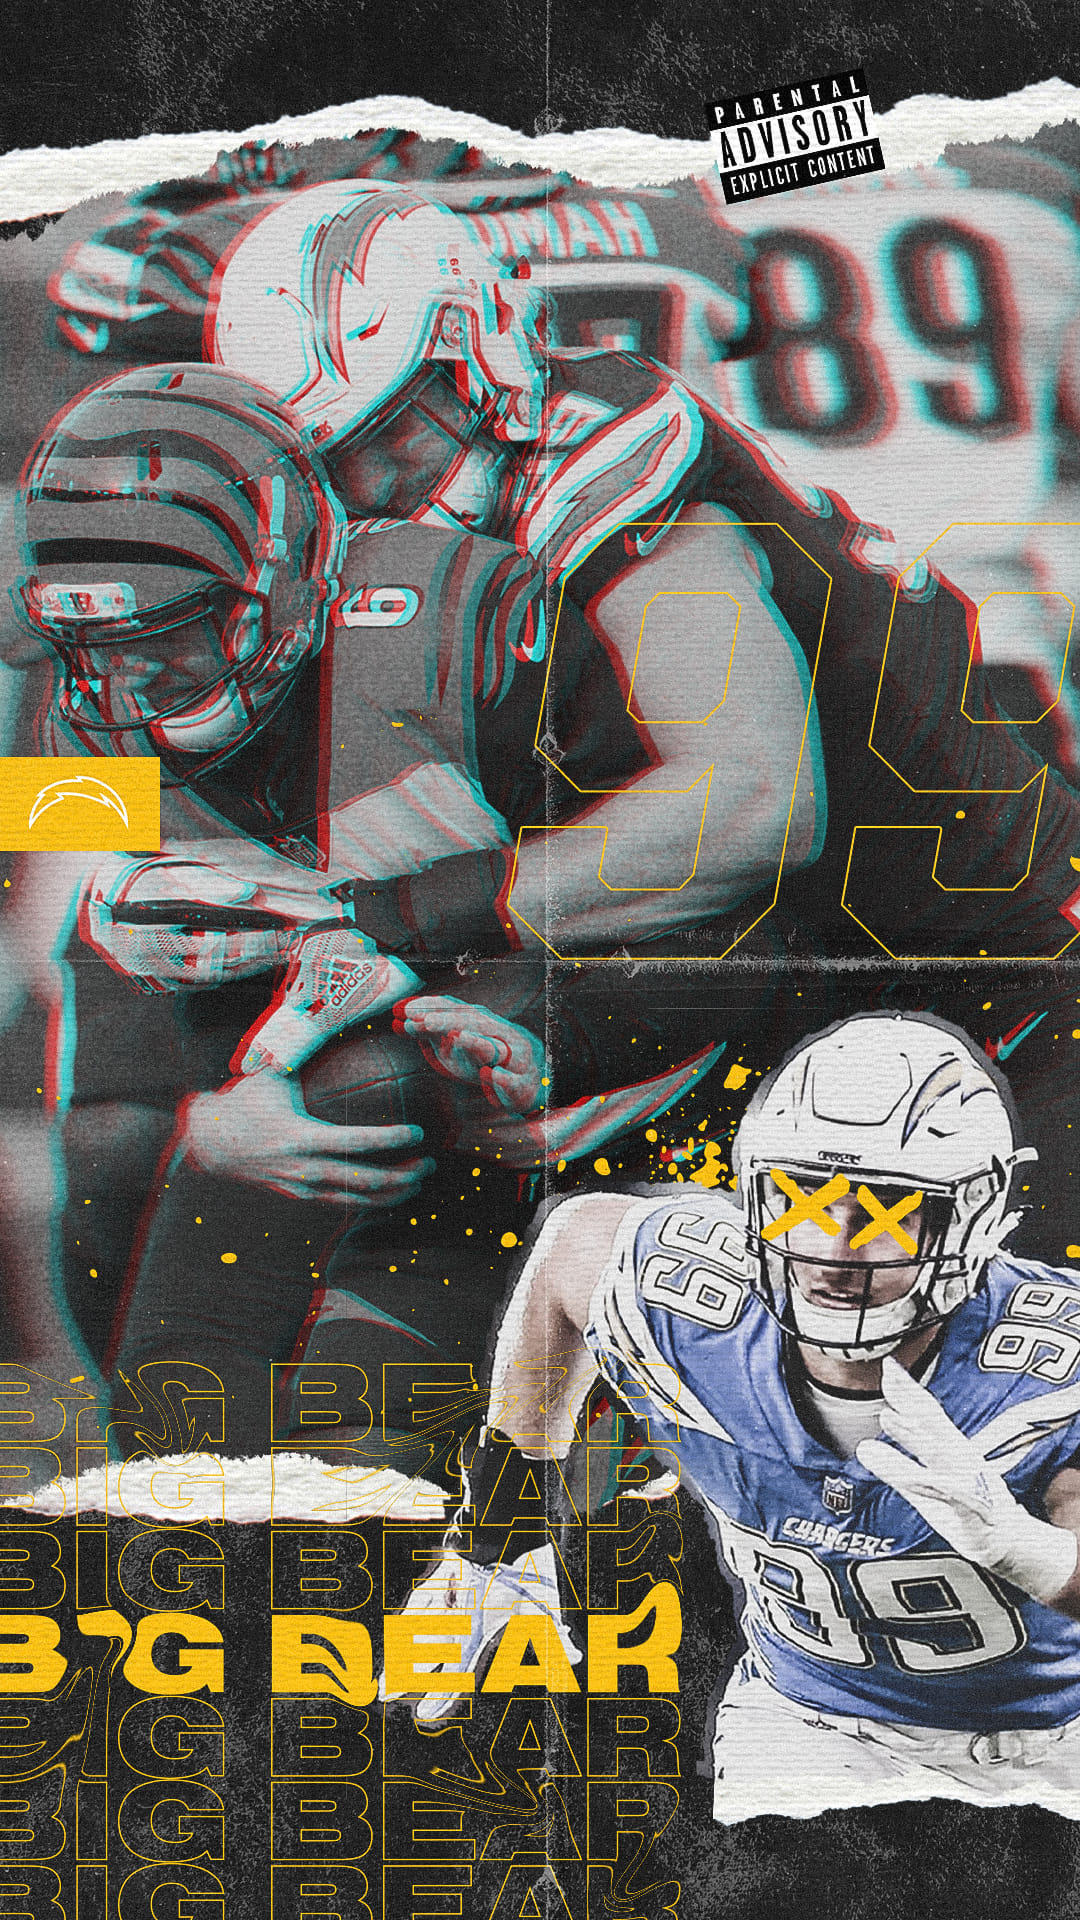 Chargers Wallpapers | Los Angeles Chargers - chargers com